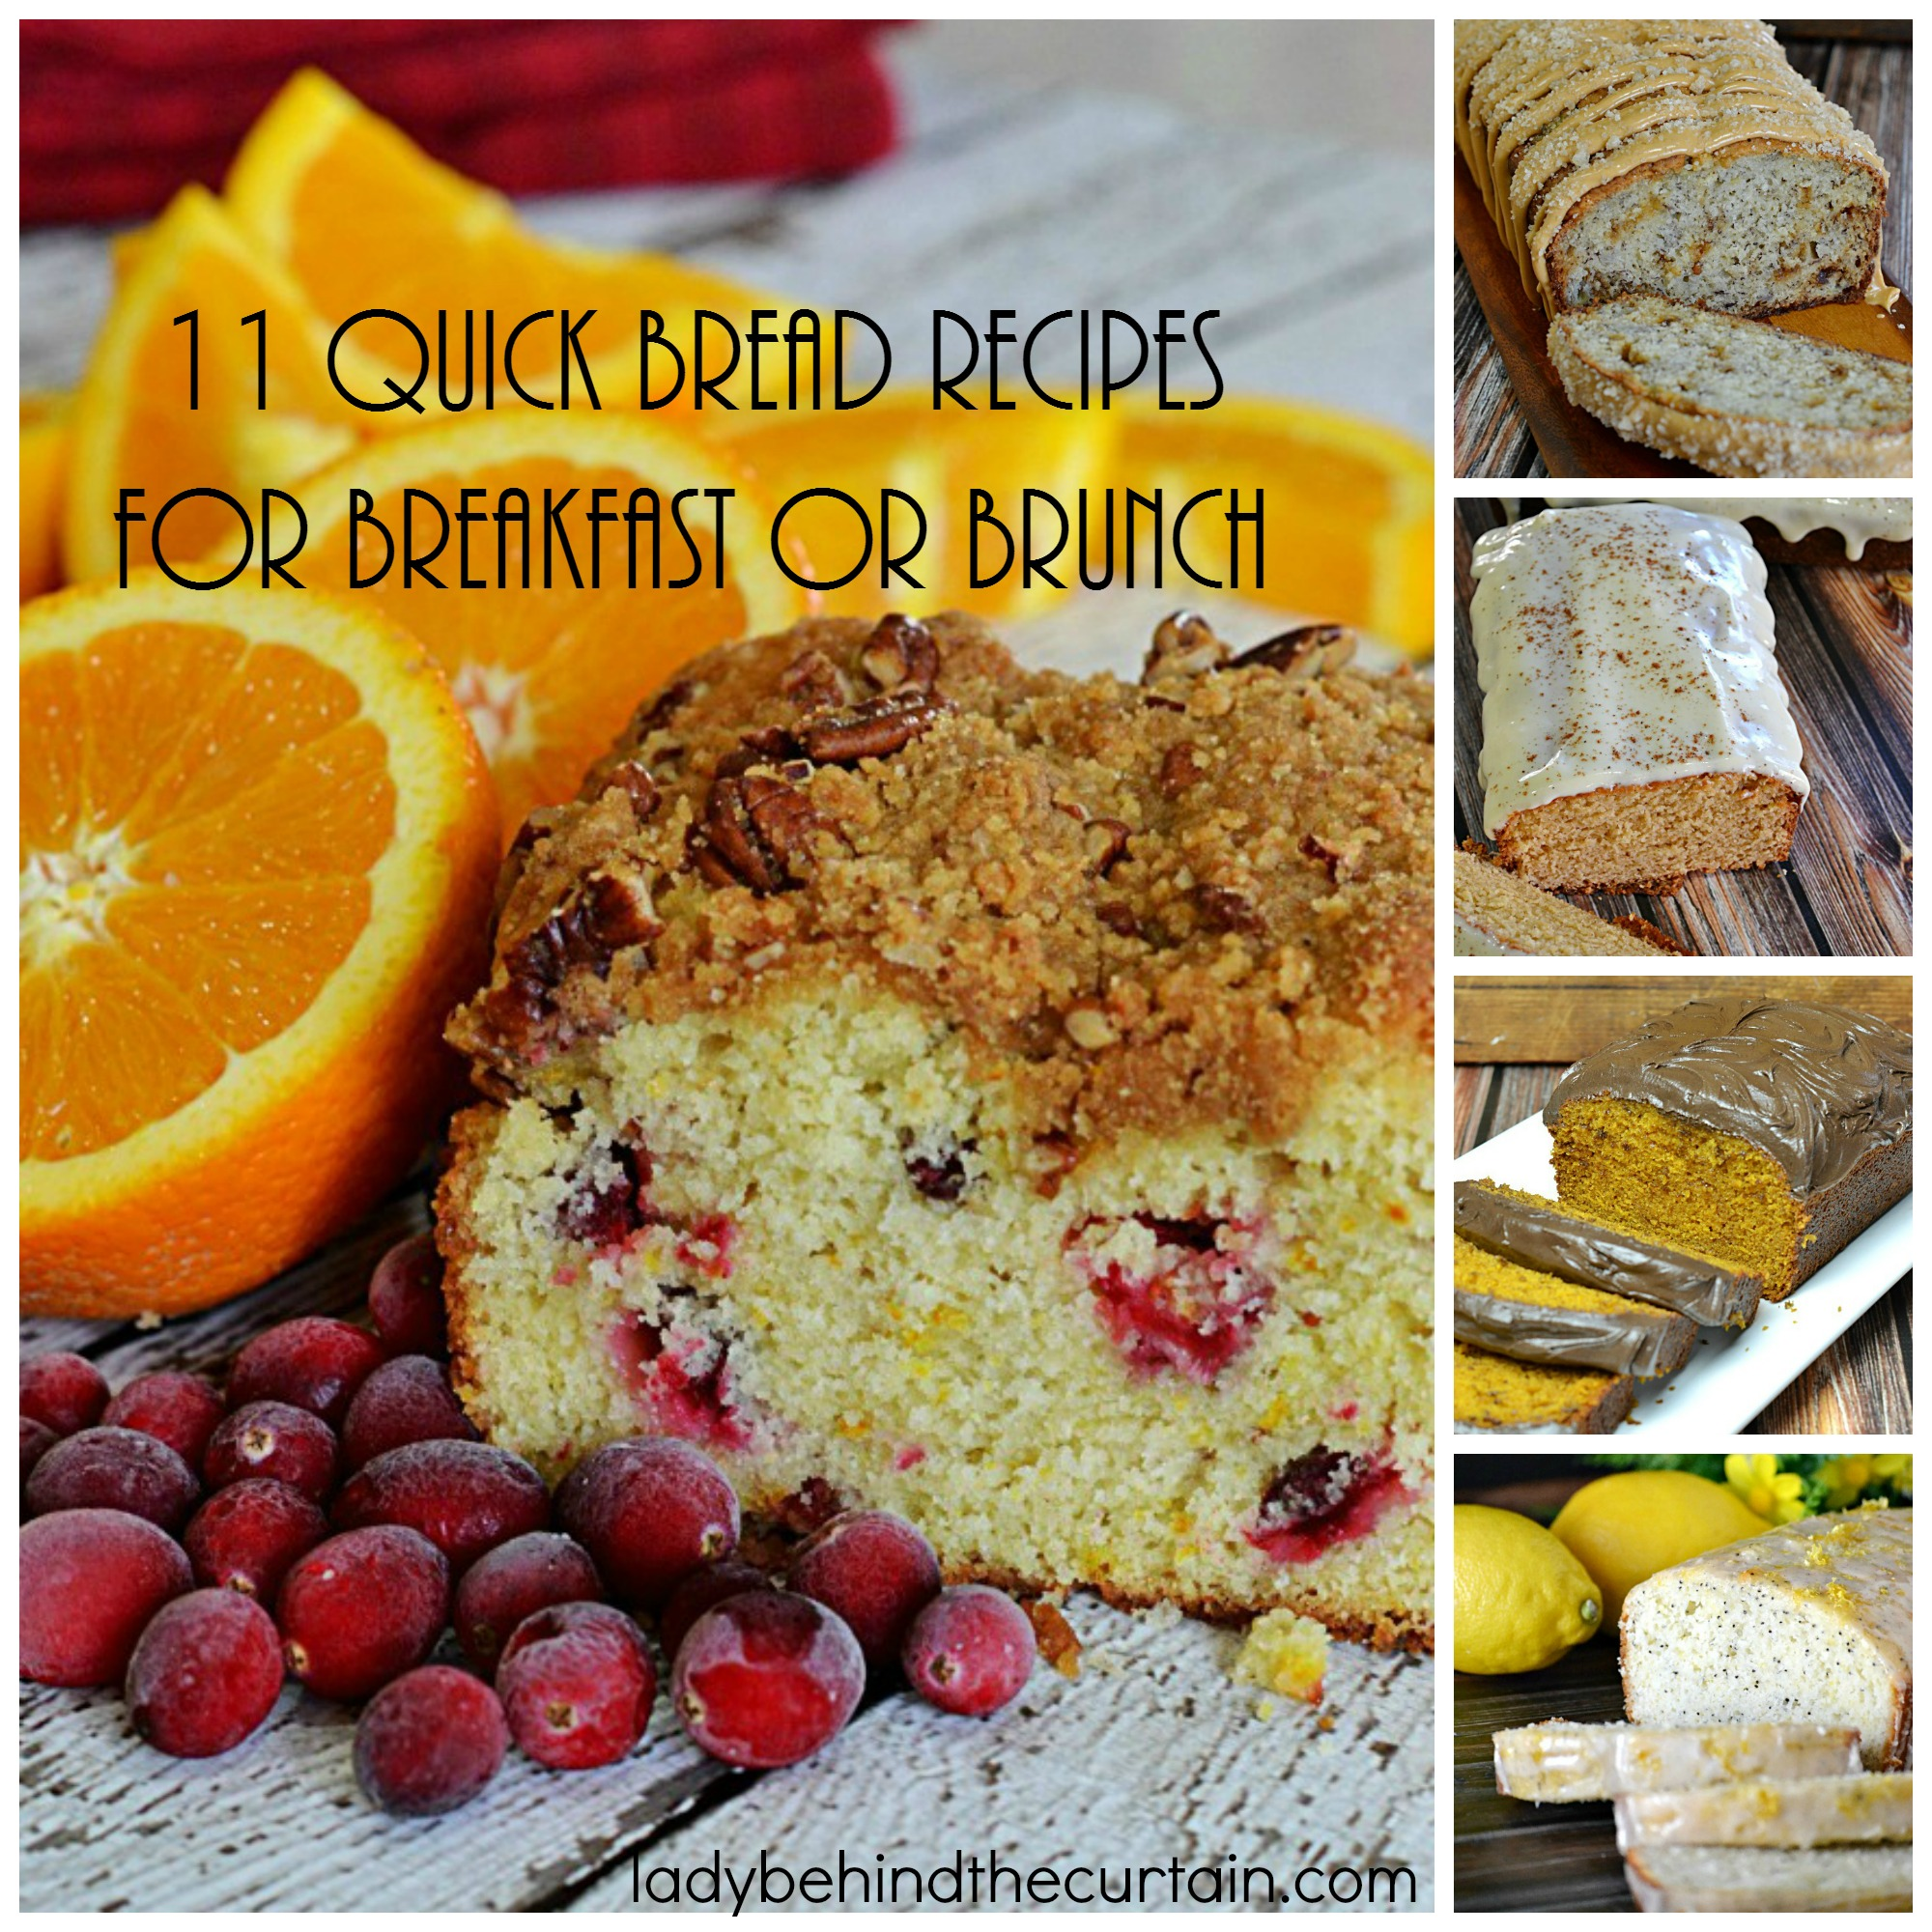 11 Quick Bread Recipes for Breakfast or Brunch | Quick breads serve so many needs. You can make several flavors, freeze them all and serve them as needed.